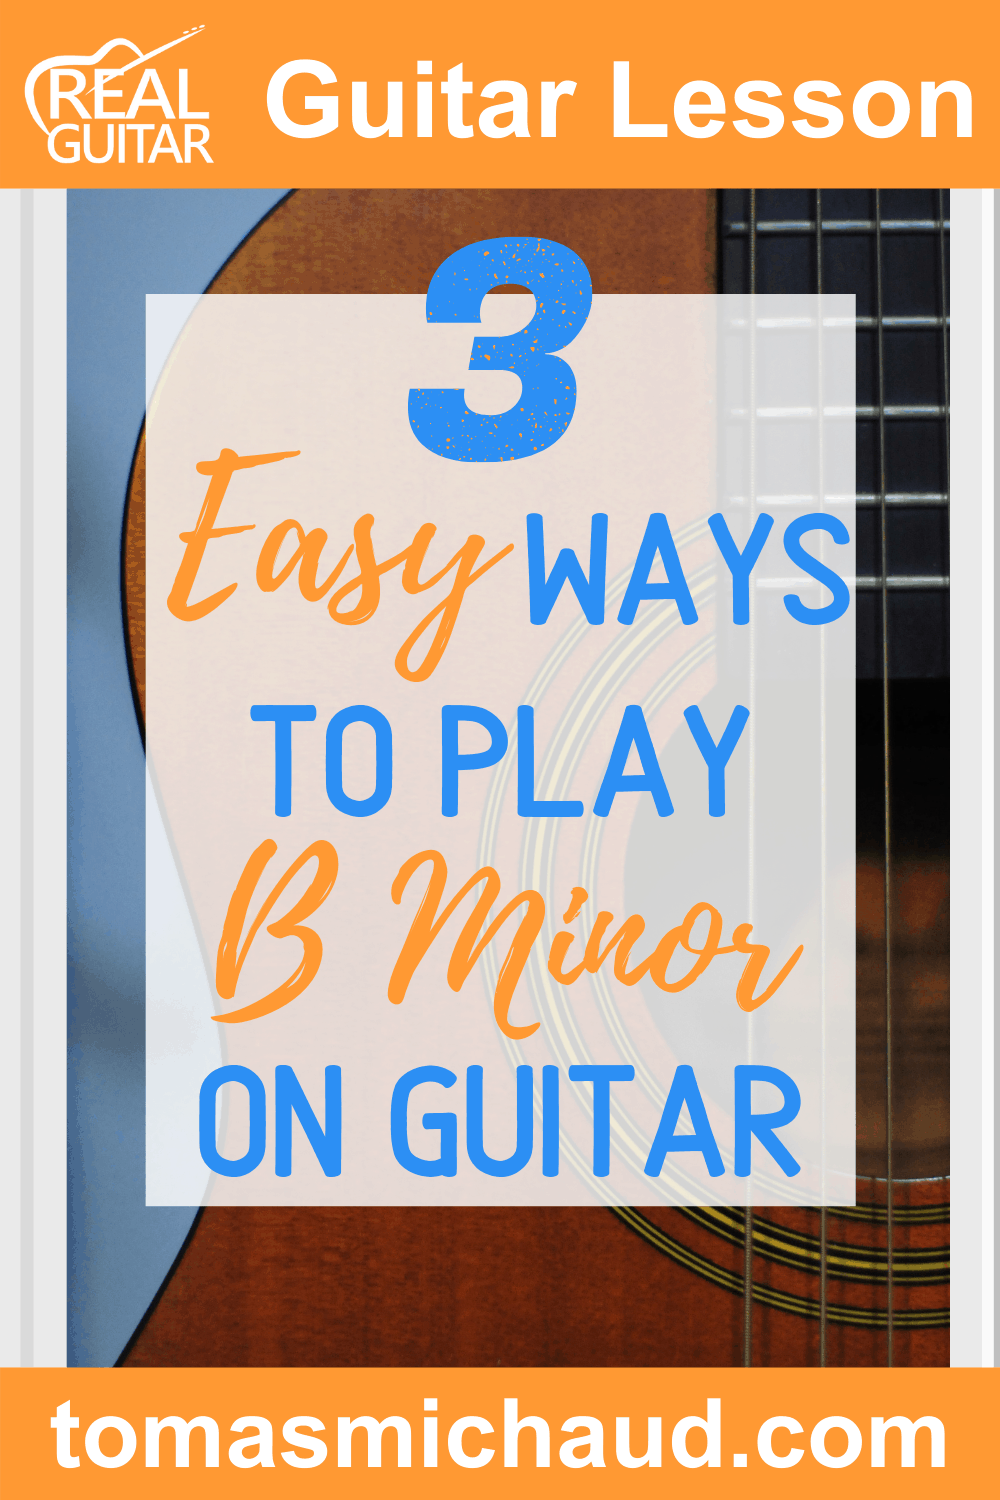 3 Easy Ways To Play B Minor On Guitar